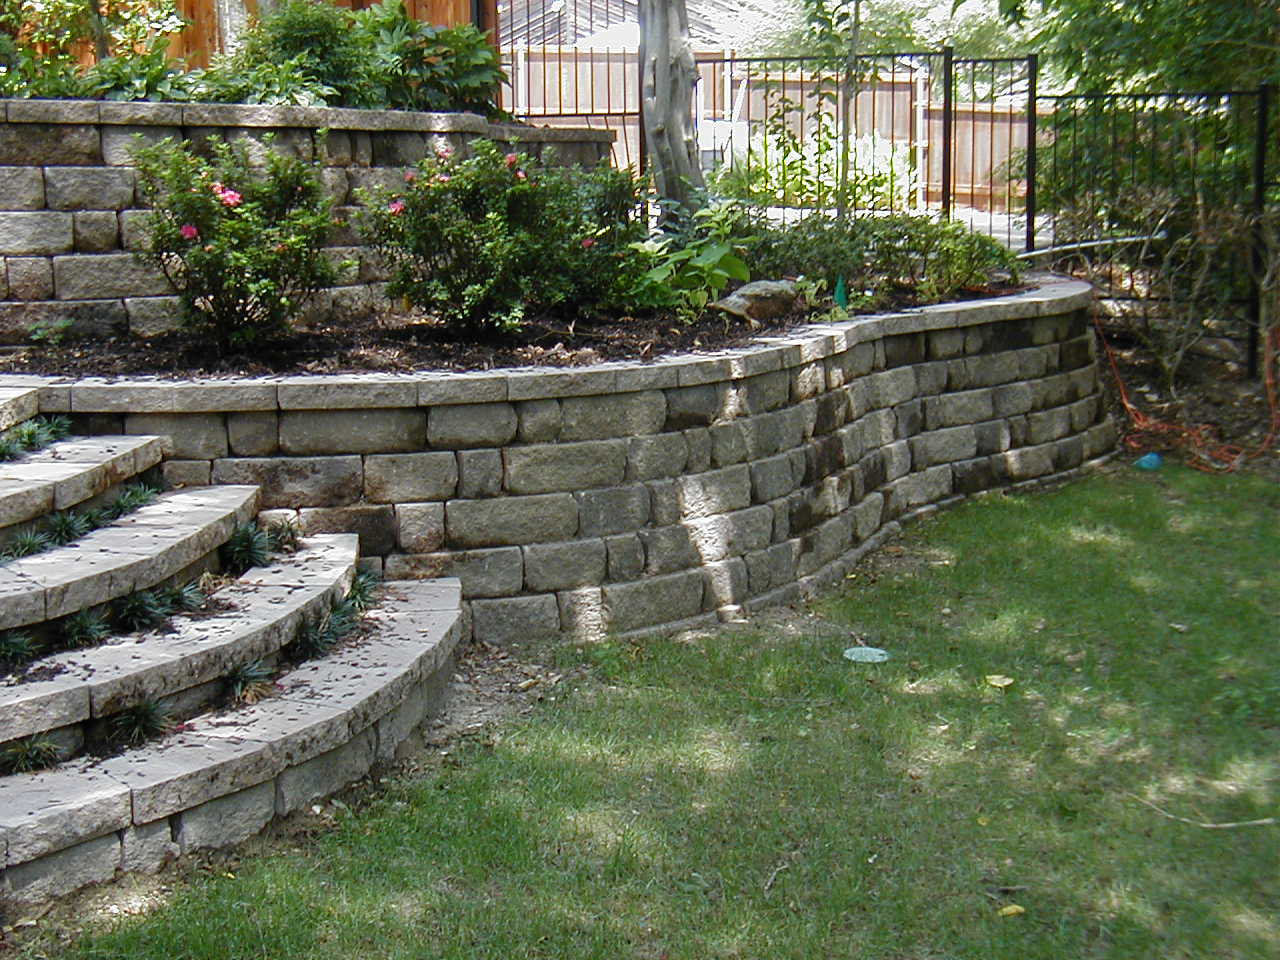 Landscaping Wall Steps : Landscapexperts how crabapple builds your stone retaining wall